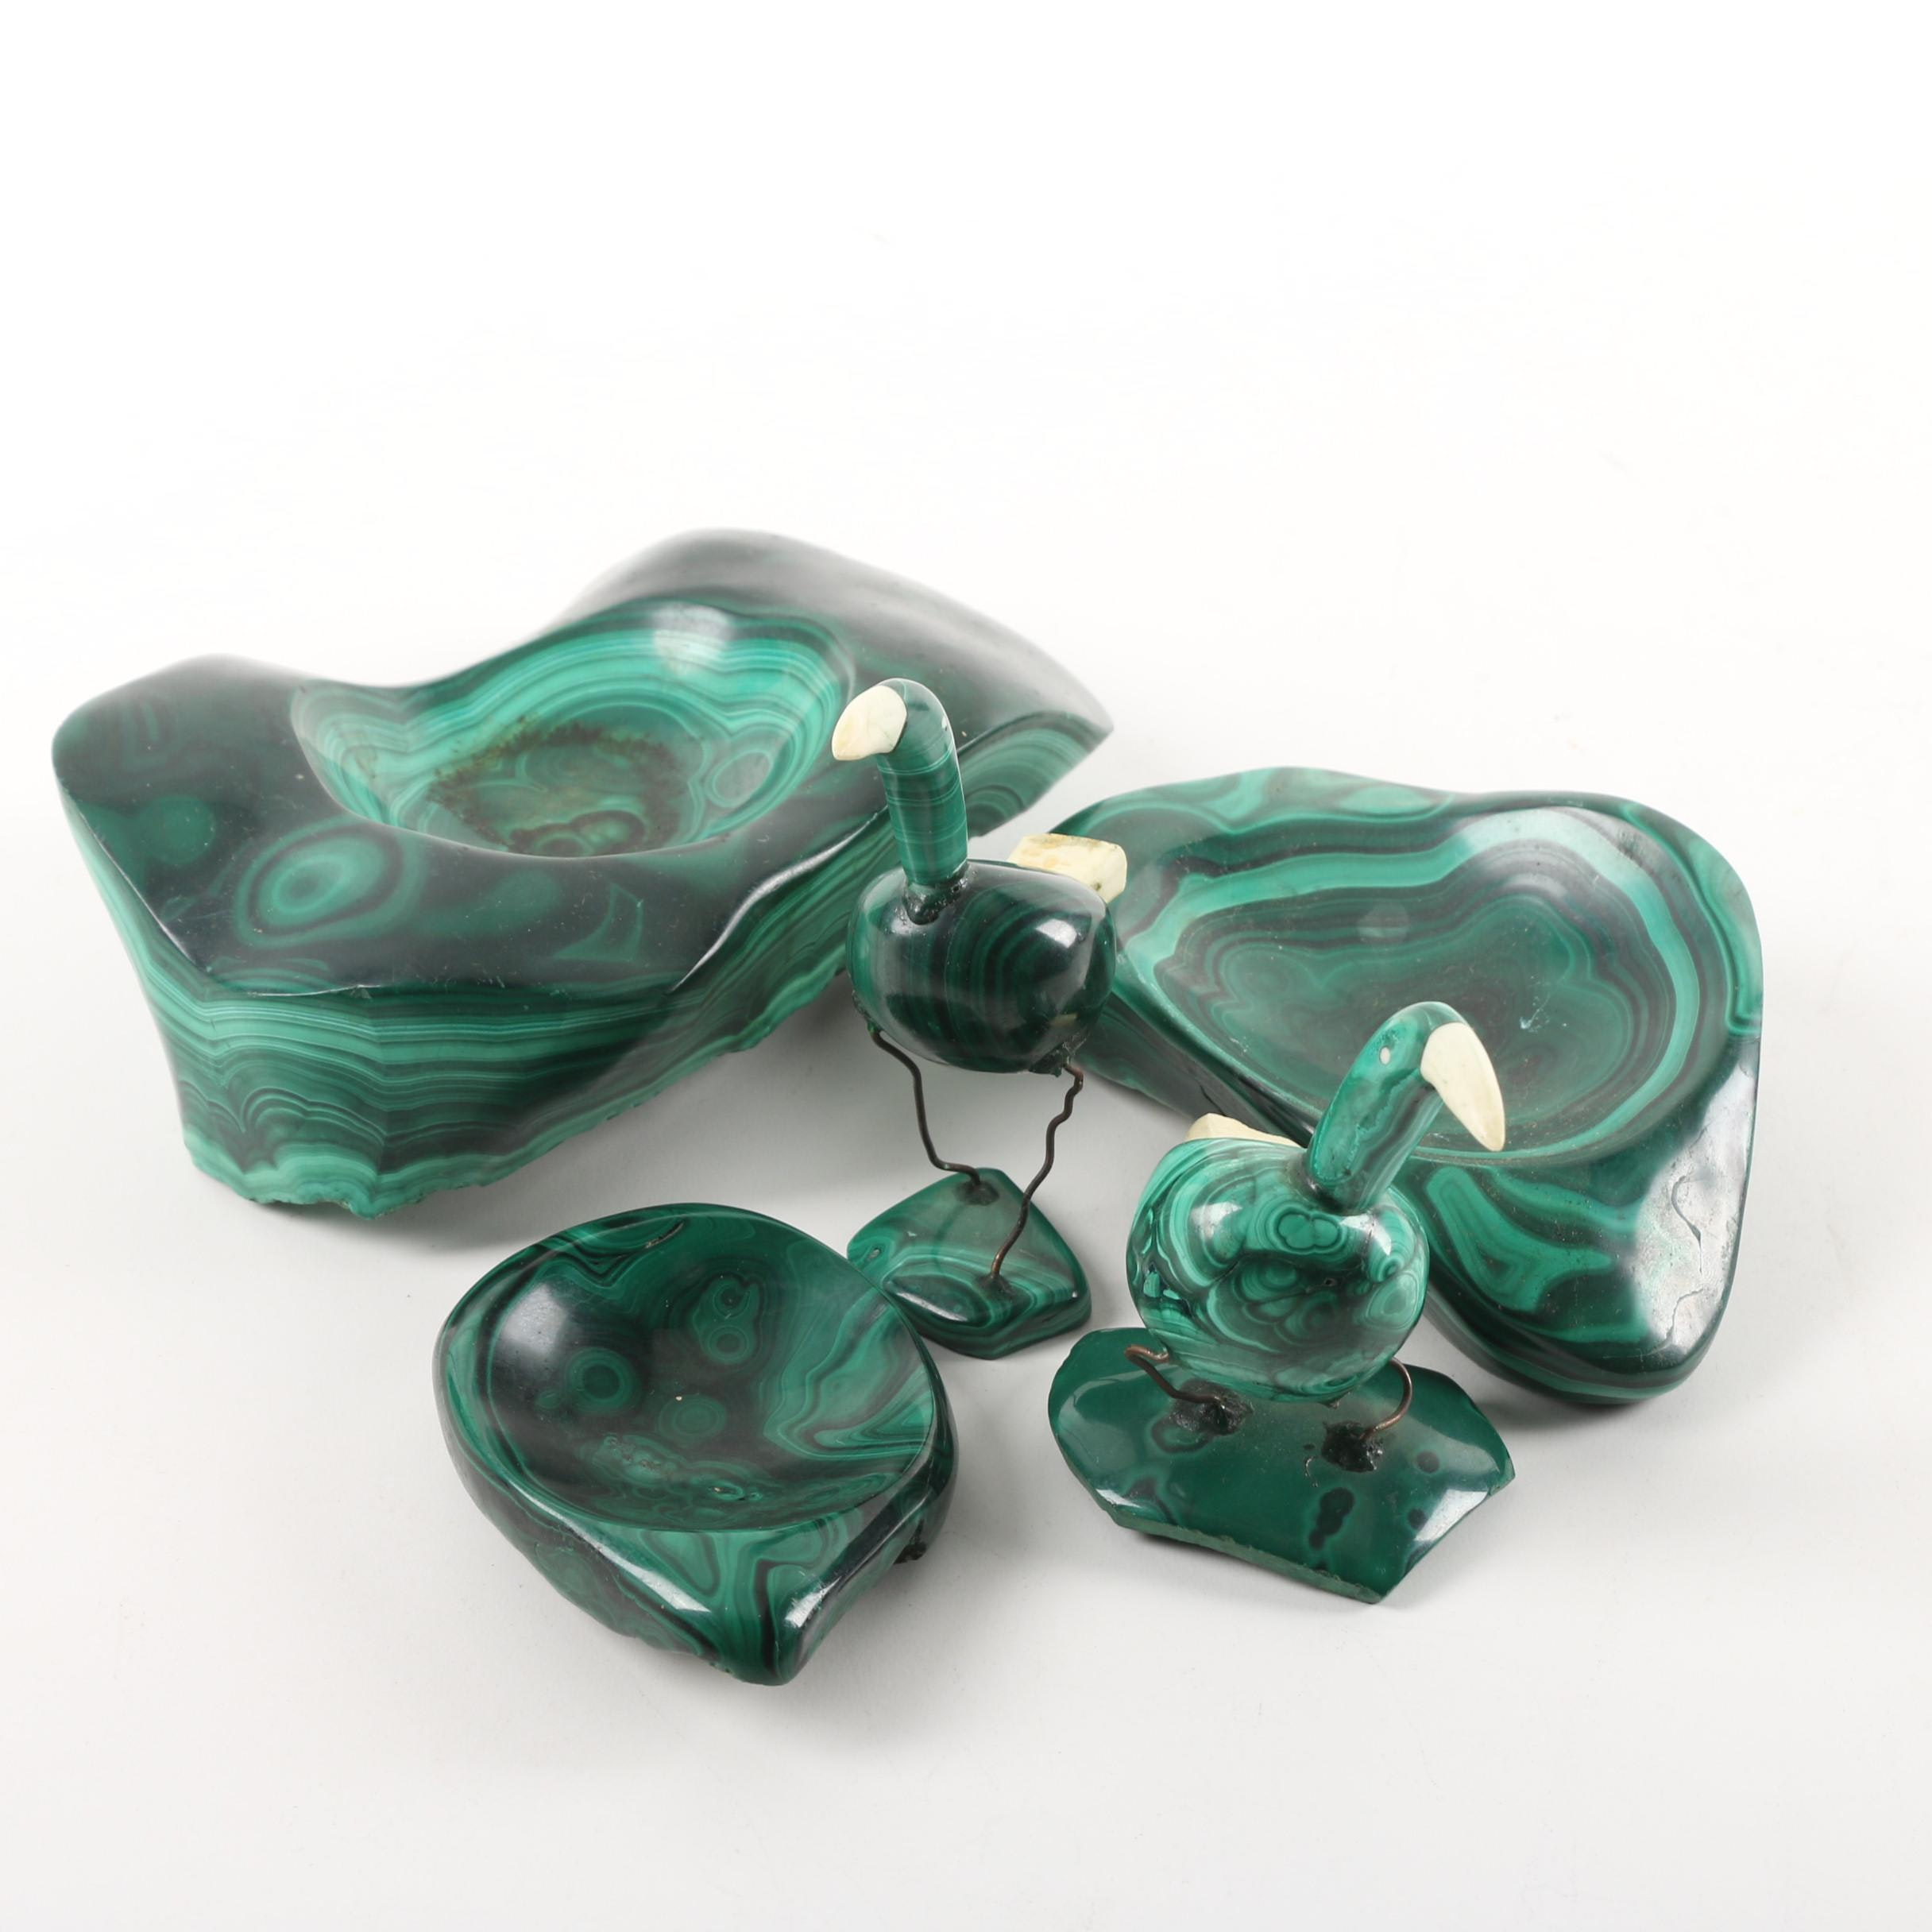 Carved Malachite Trinket Trays and Bird Figurines with Wire and Resin Accents